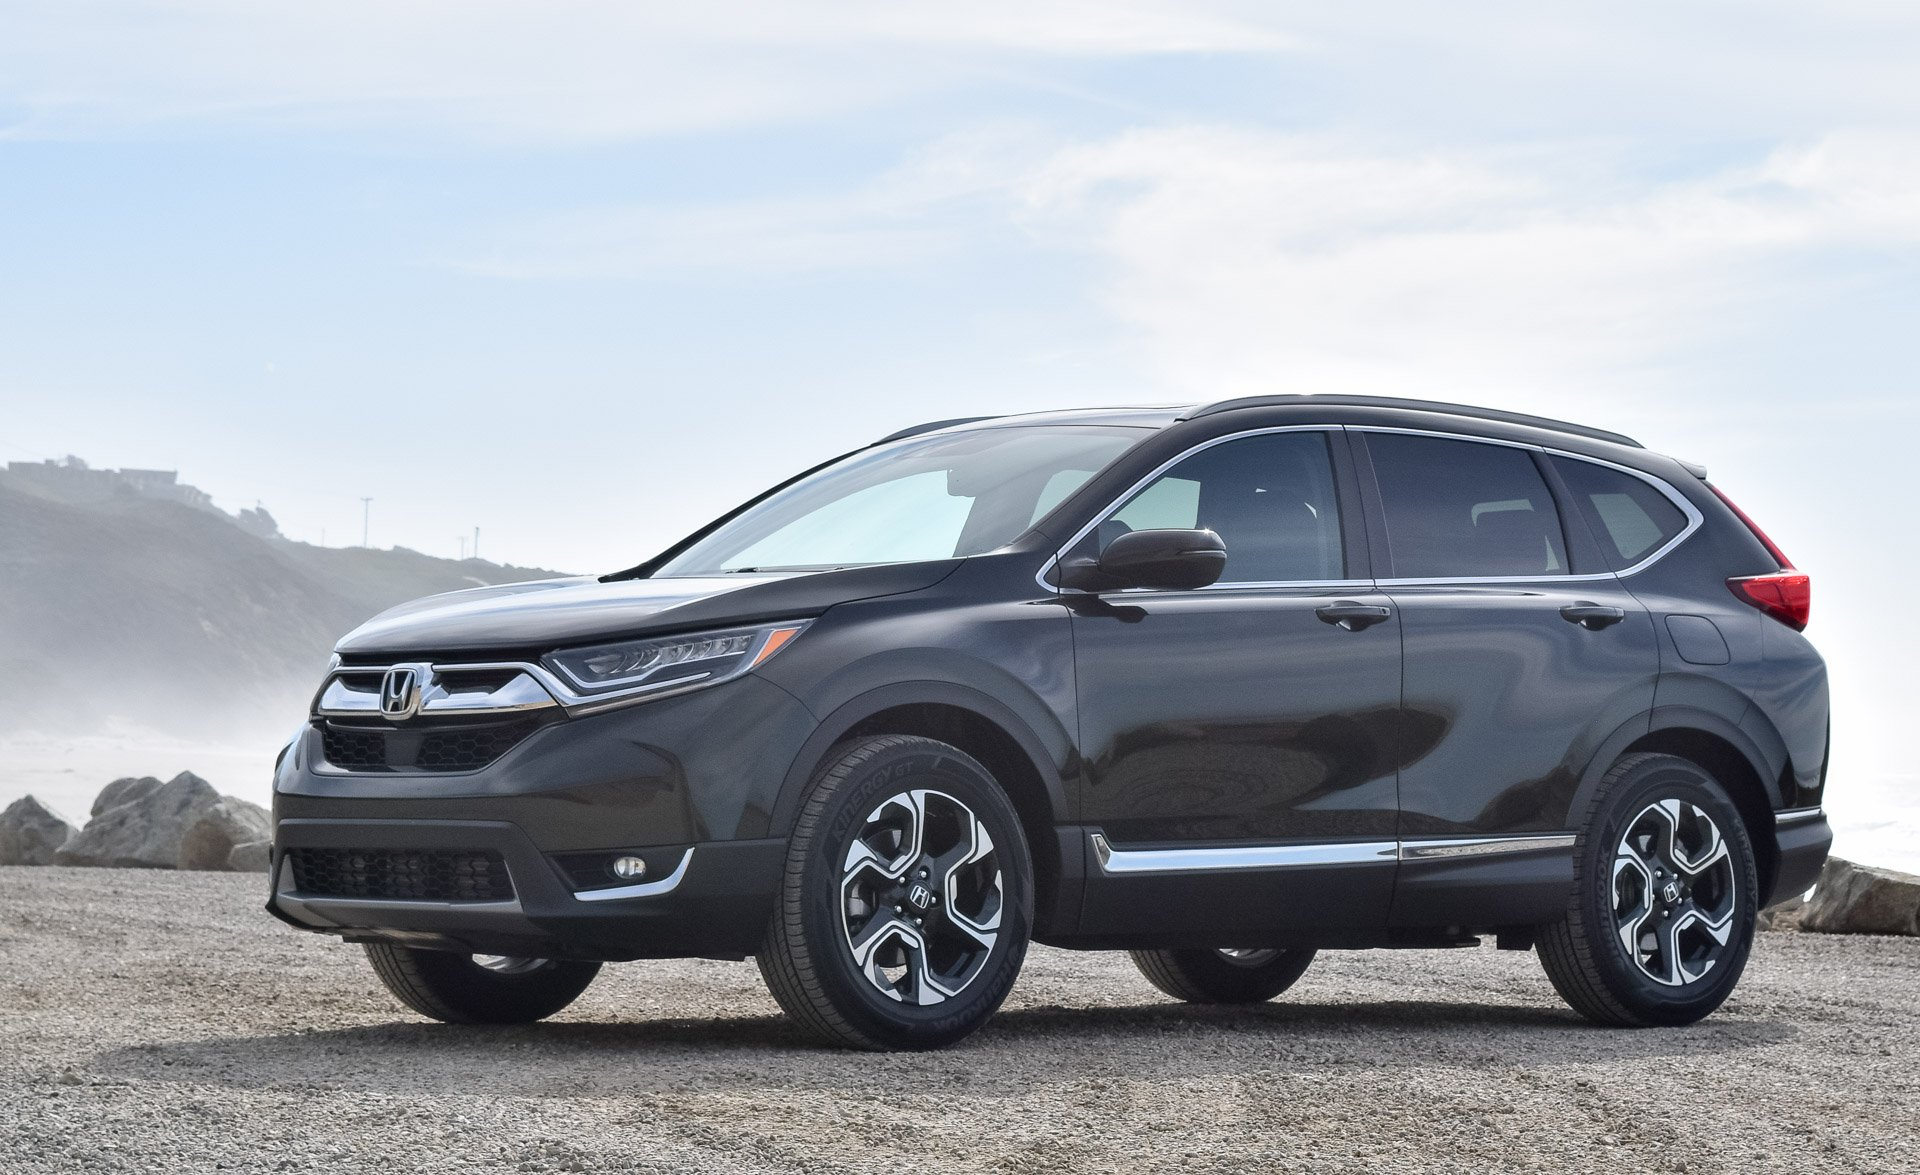 First Drive Review: 2017 Honda CR-V - 95 Octane